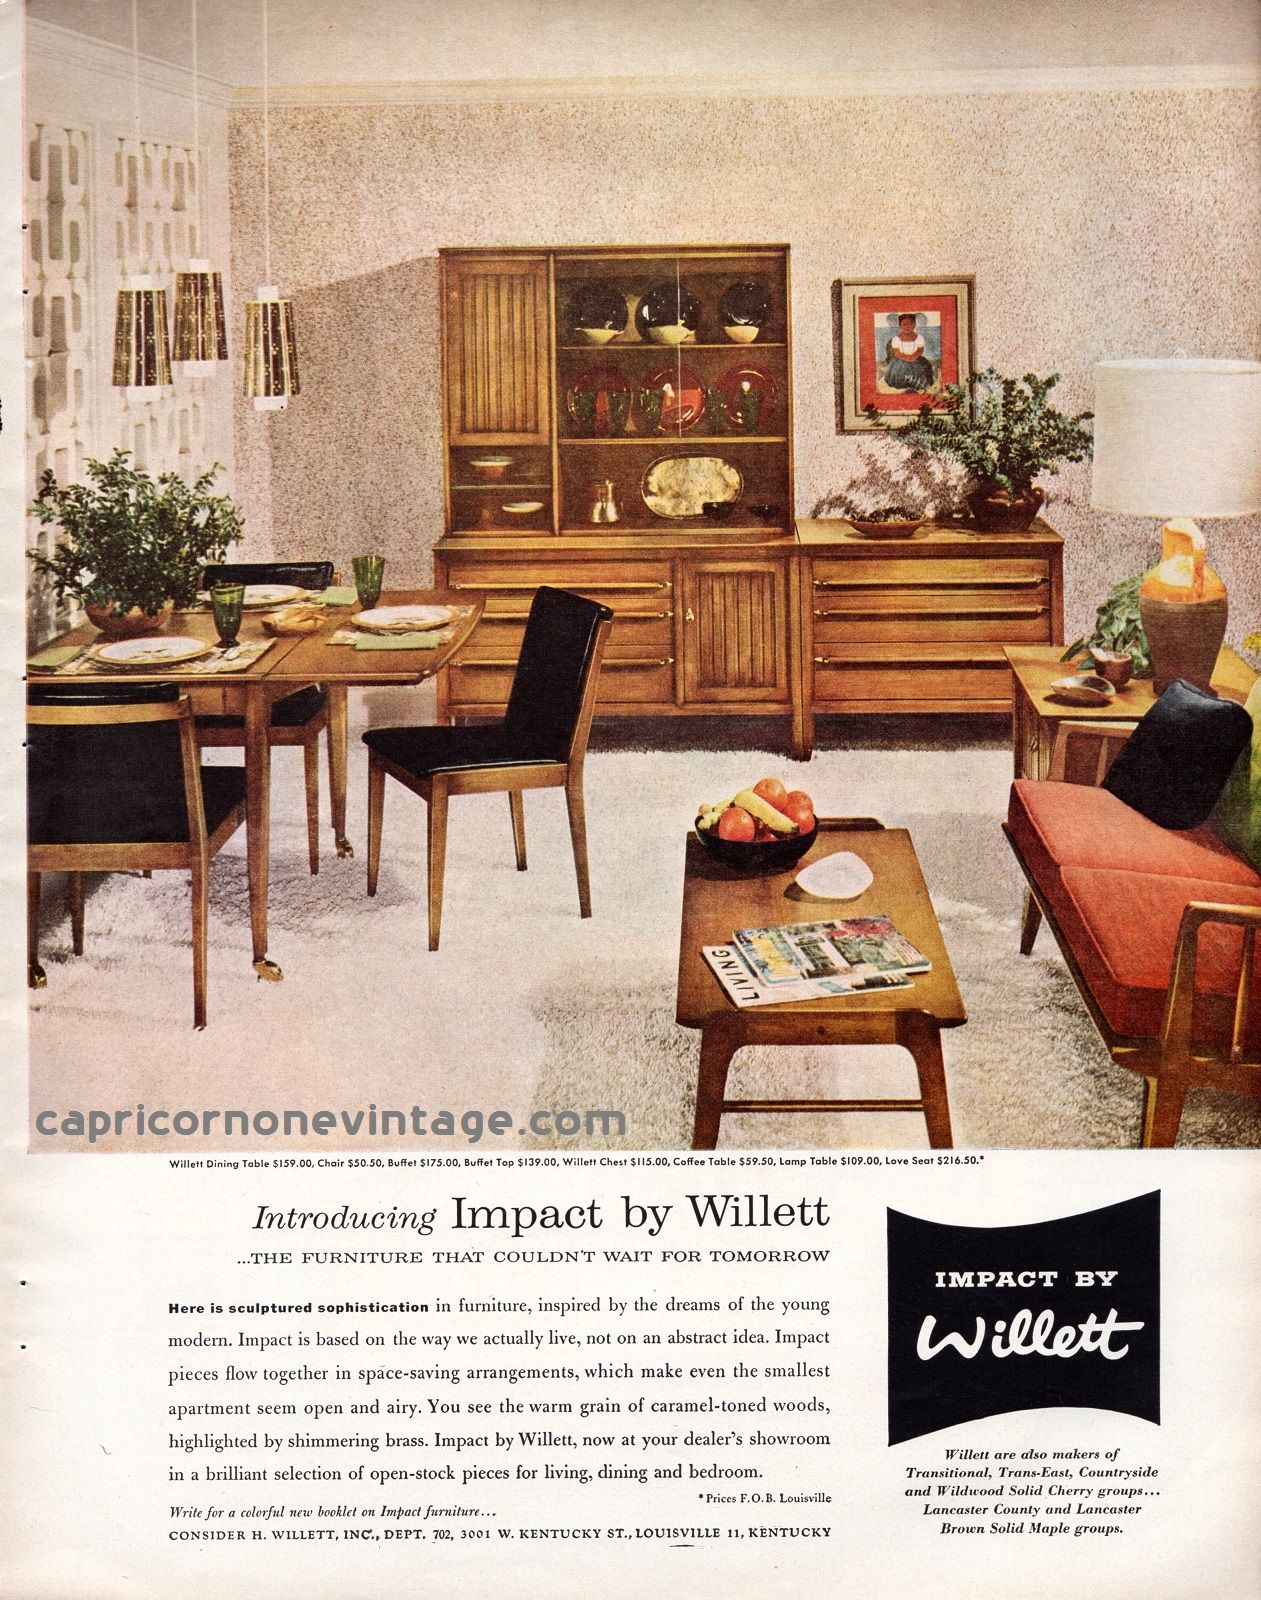 1957 Impact By Willett Furniture Magazine Ad Mid Century Modern Furnishings  Retro Room Decor 1950s Vintage Part 50